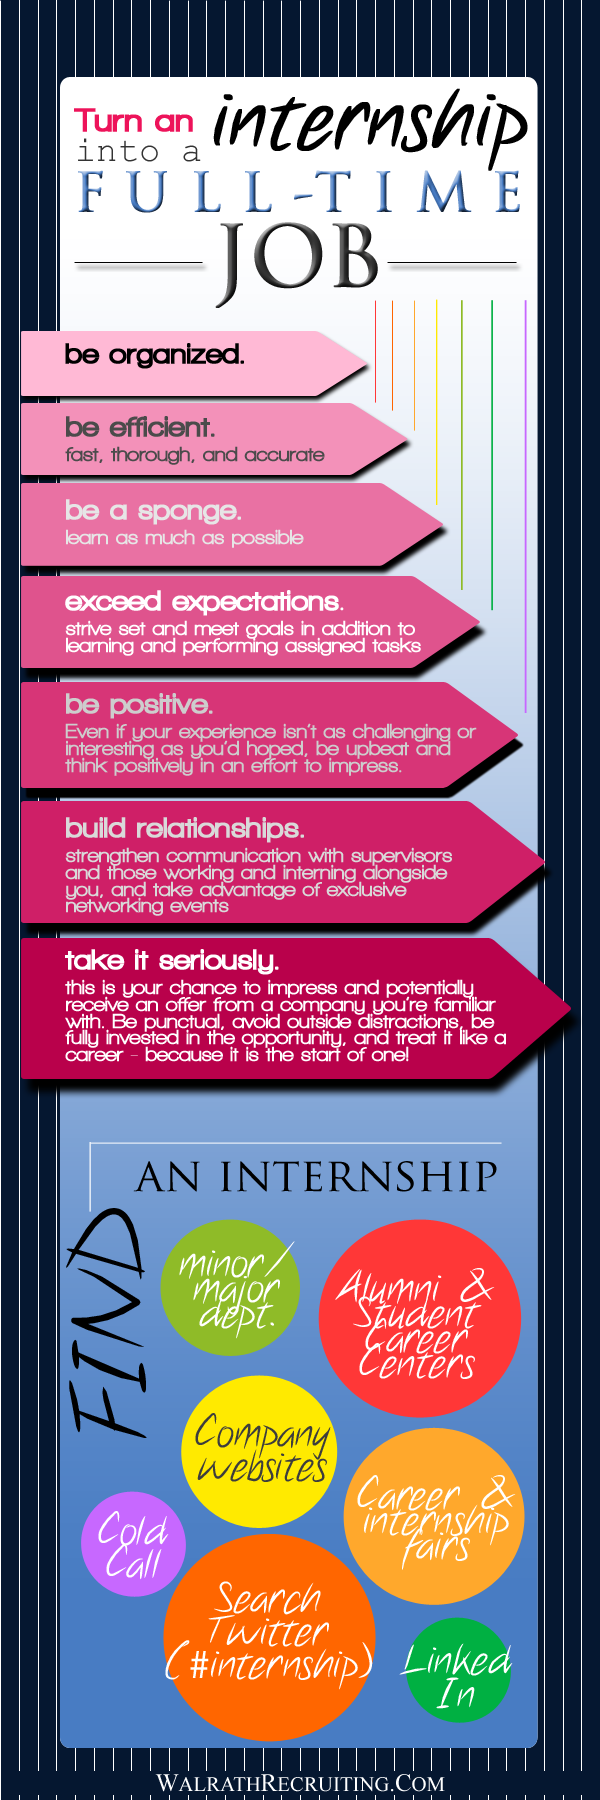 How To Turn An Internship Into A Full-Time Job